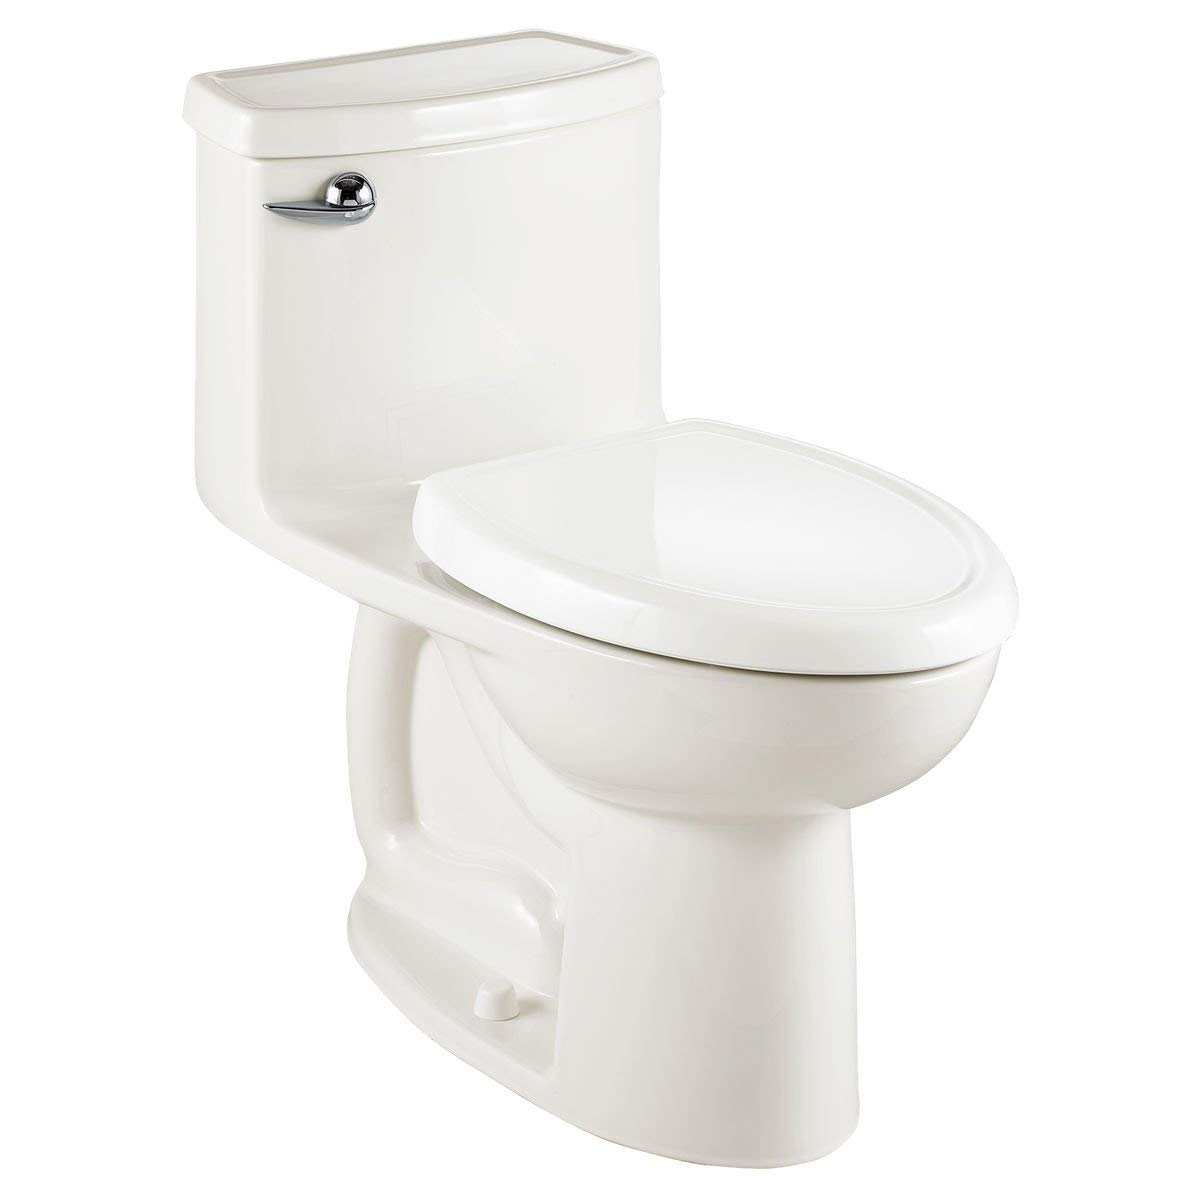 Top 4 Best Elongated Toilets Reviews in 2020 1